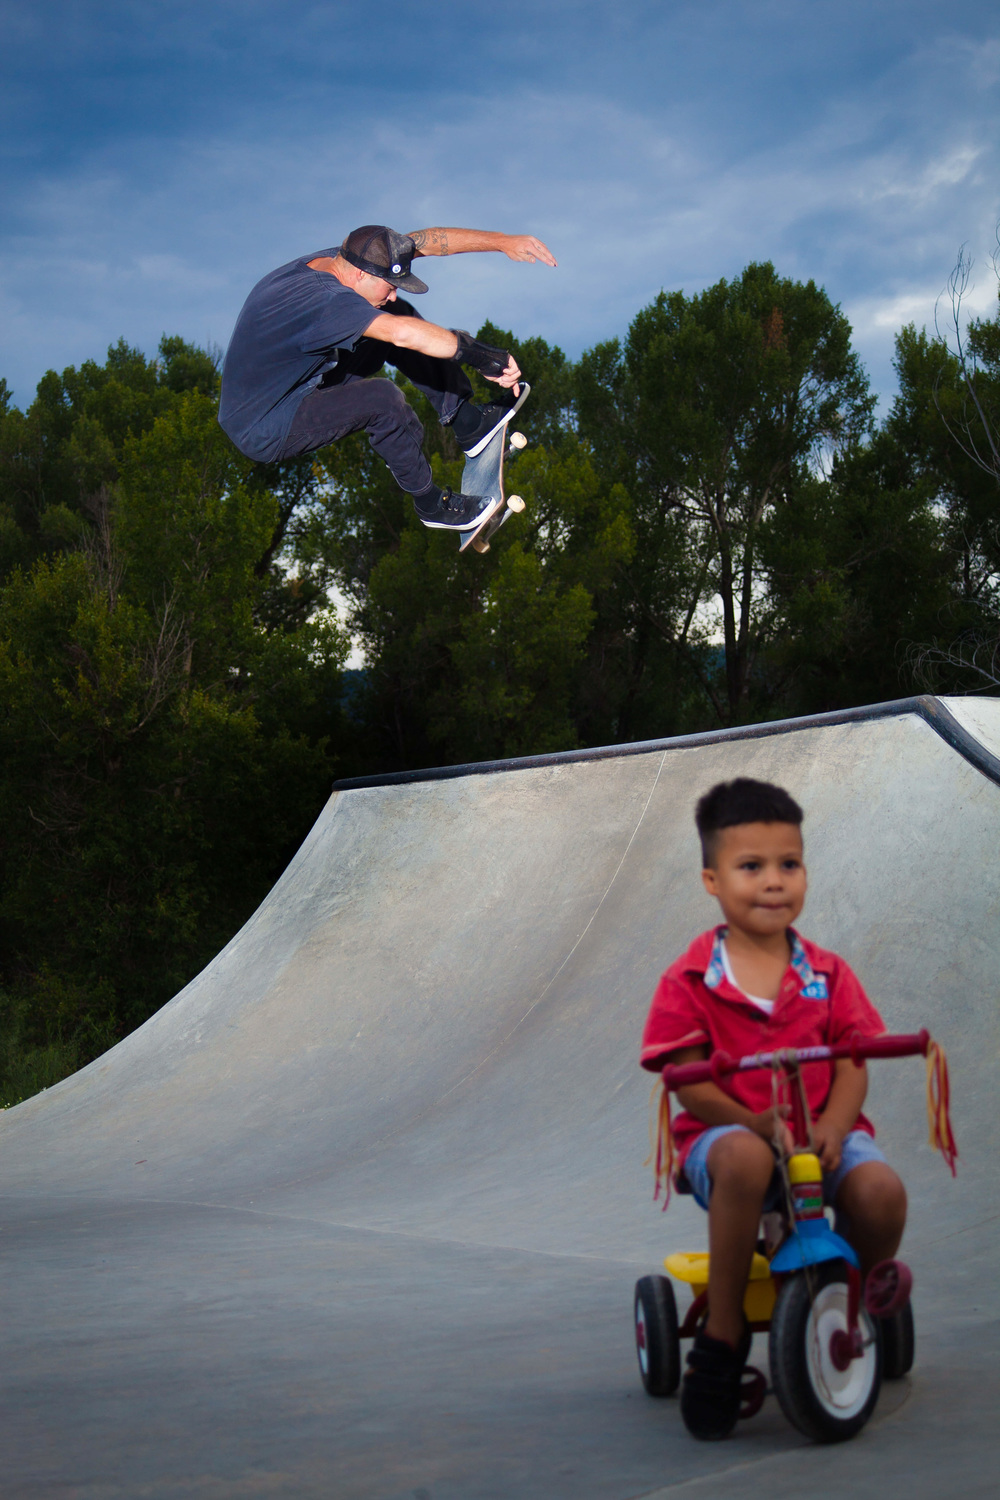 brady ollie to fakie kid-.jpg